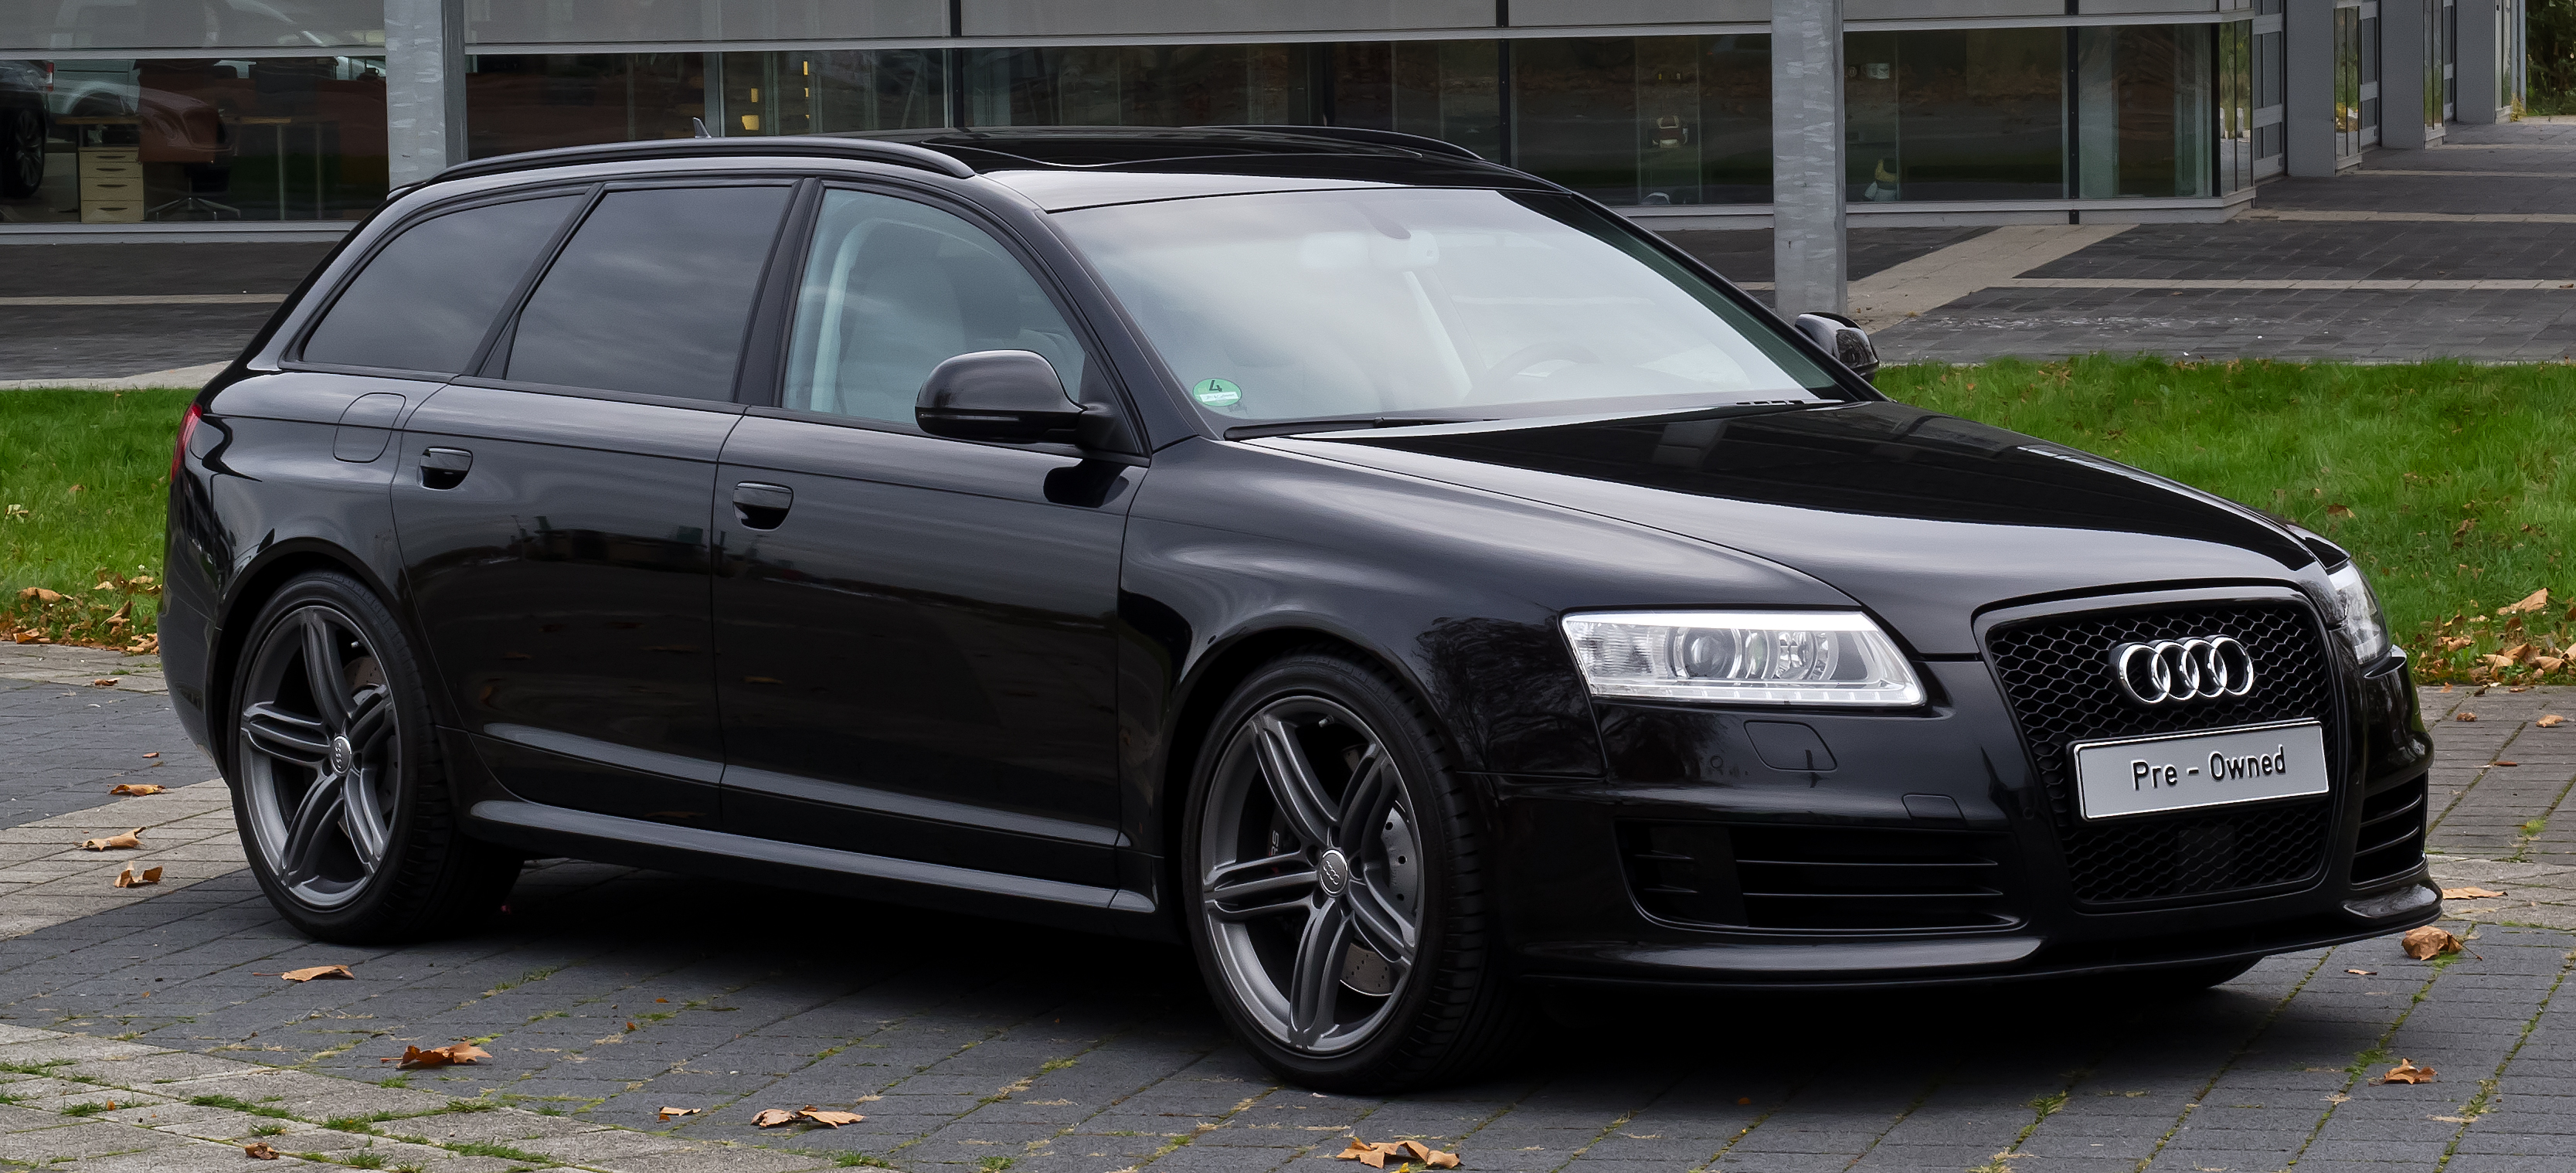 2010 Audi Rs6 C6 Pictures Information And Specs Auto